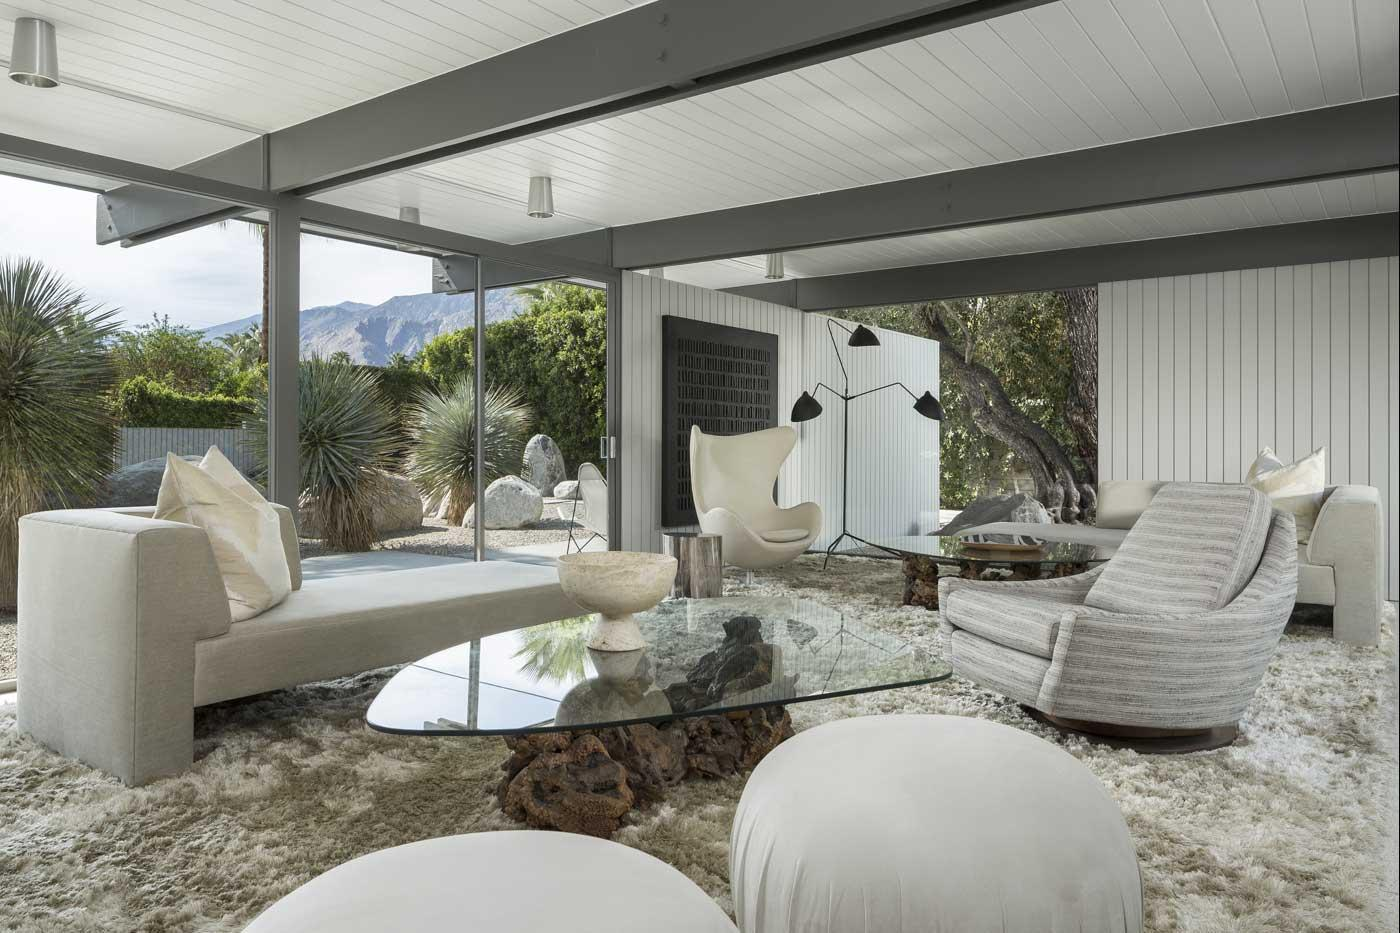 1272 e verbena dr palm springs ca 92262 usa for Palm springs for sale by owner